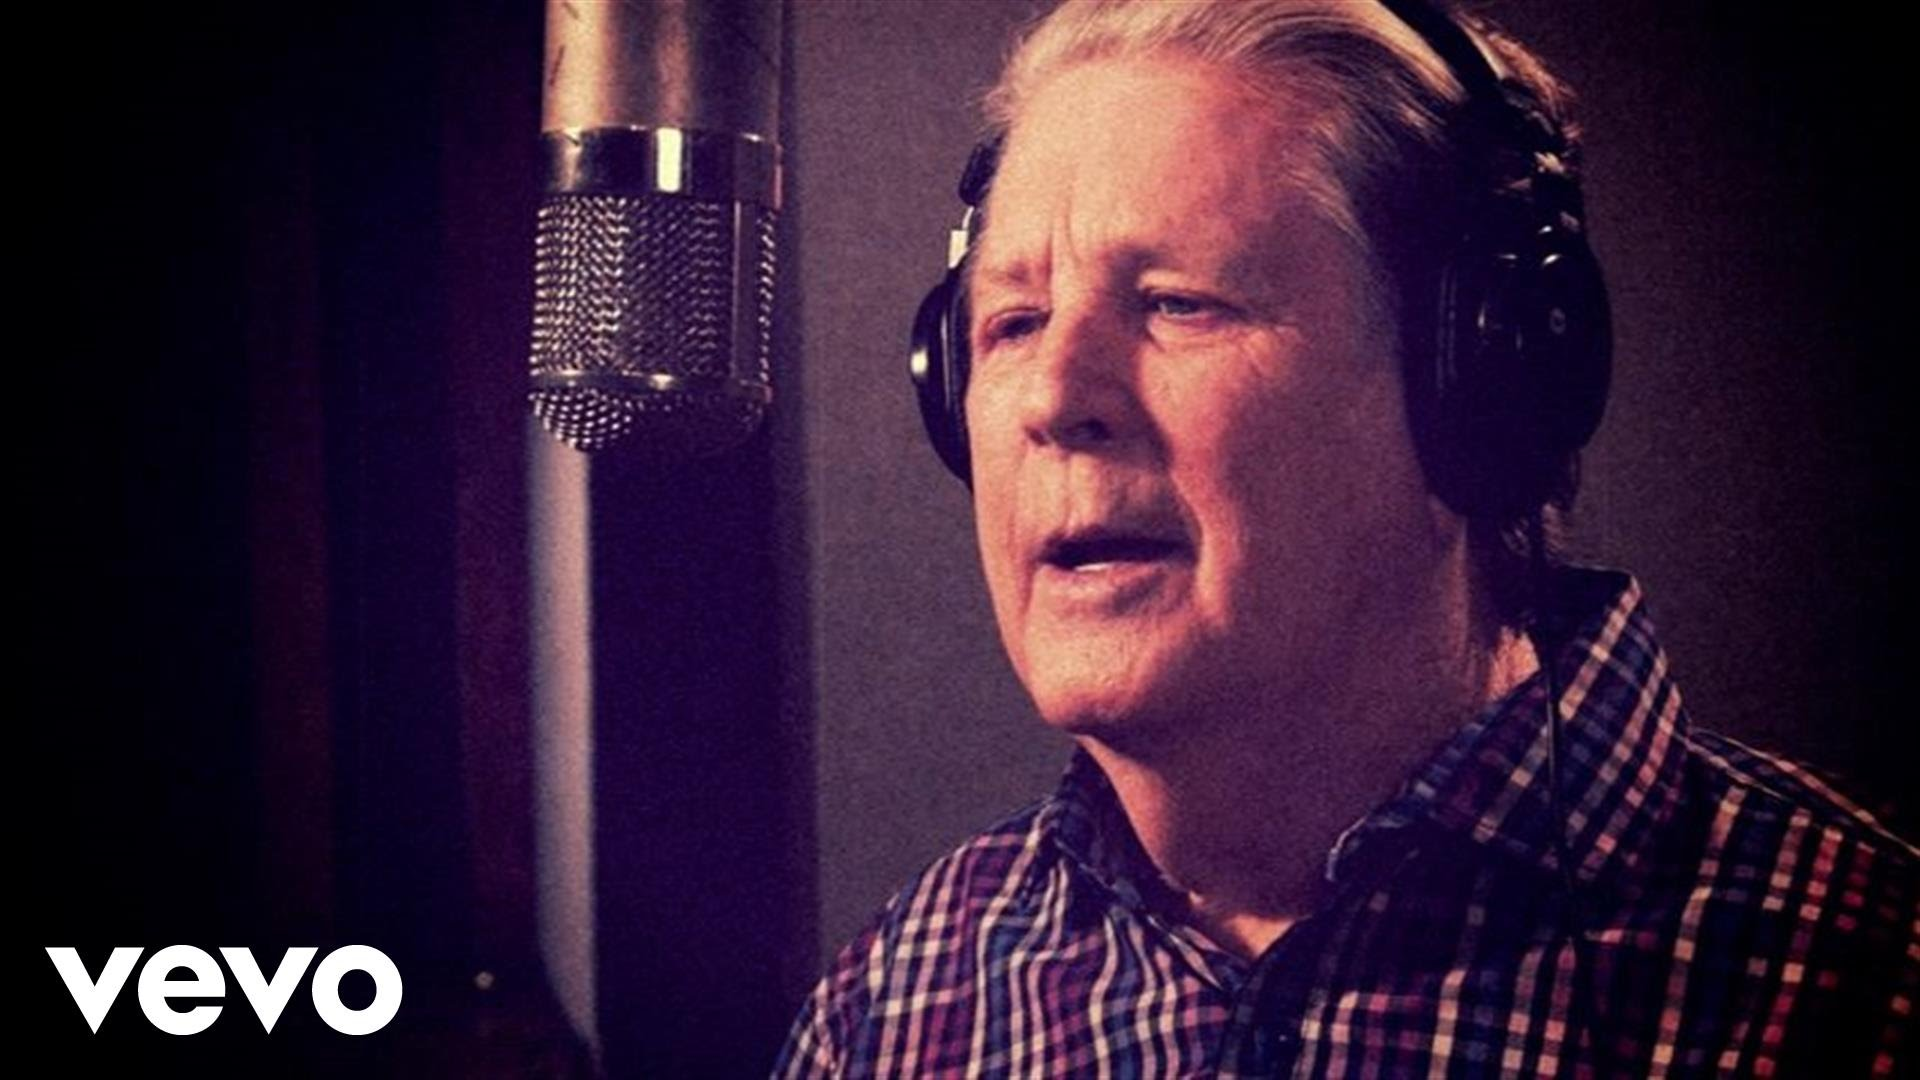 Beach Boys' co-founder Brian Wilson bringing his 'Greatest Hits' to Pikes Peak Center